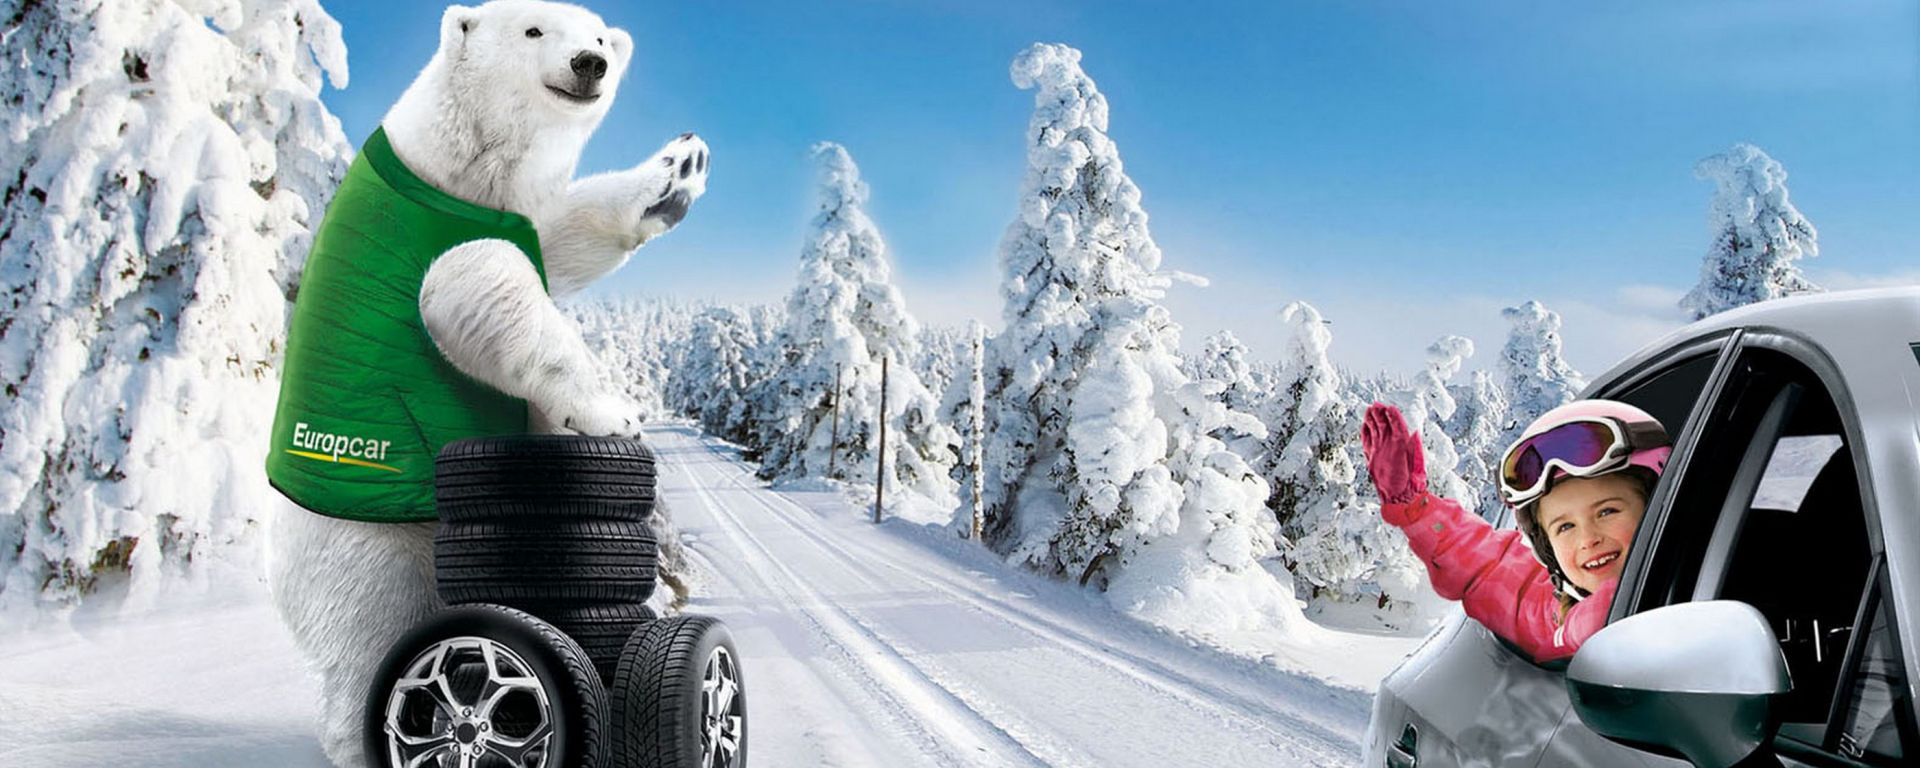 Europcar Winter Program